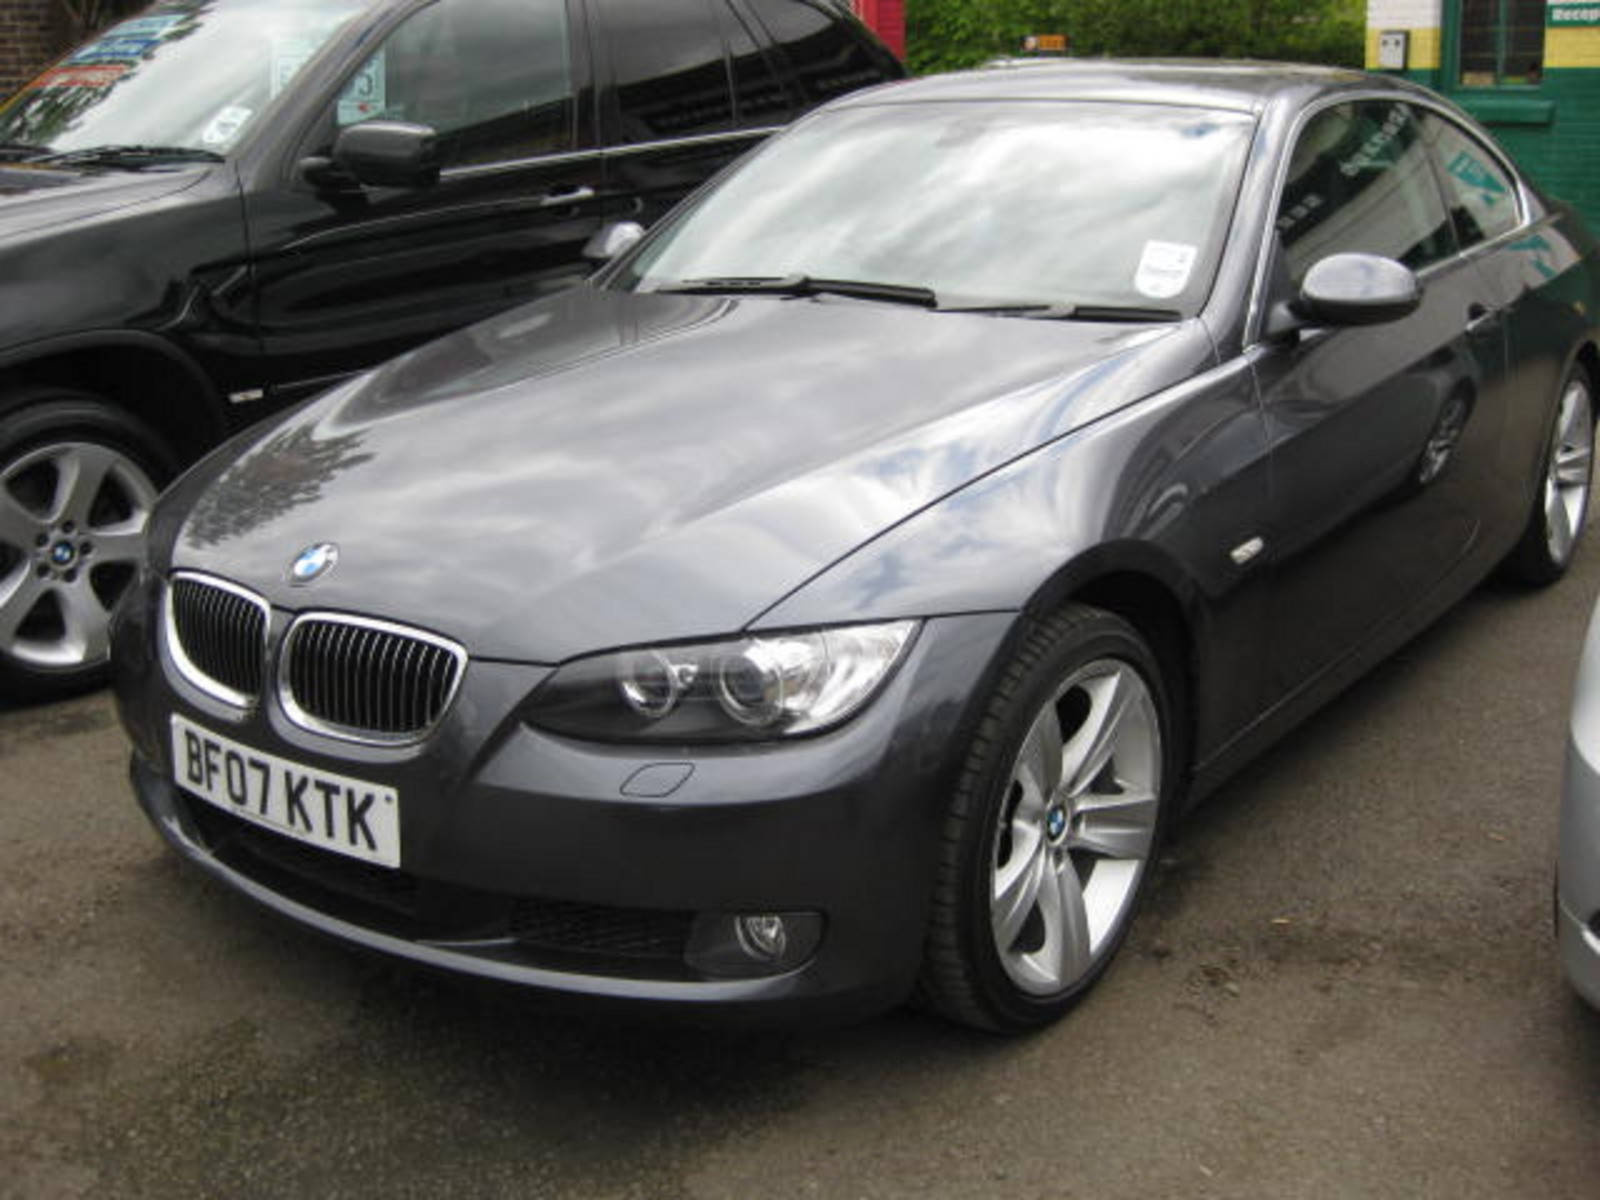 BMW 3 Series 2.5 325i SE Coupe Petrol Grey at H & D Motors Watford